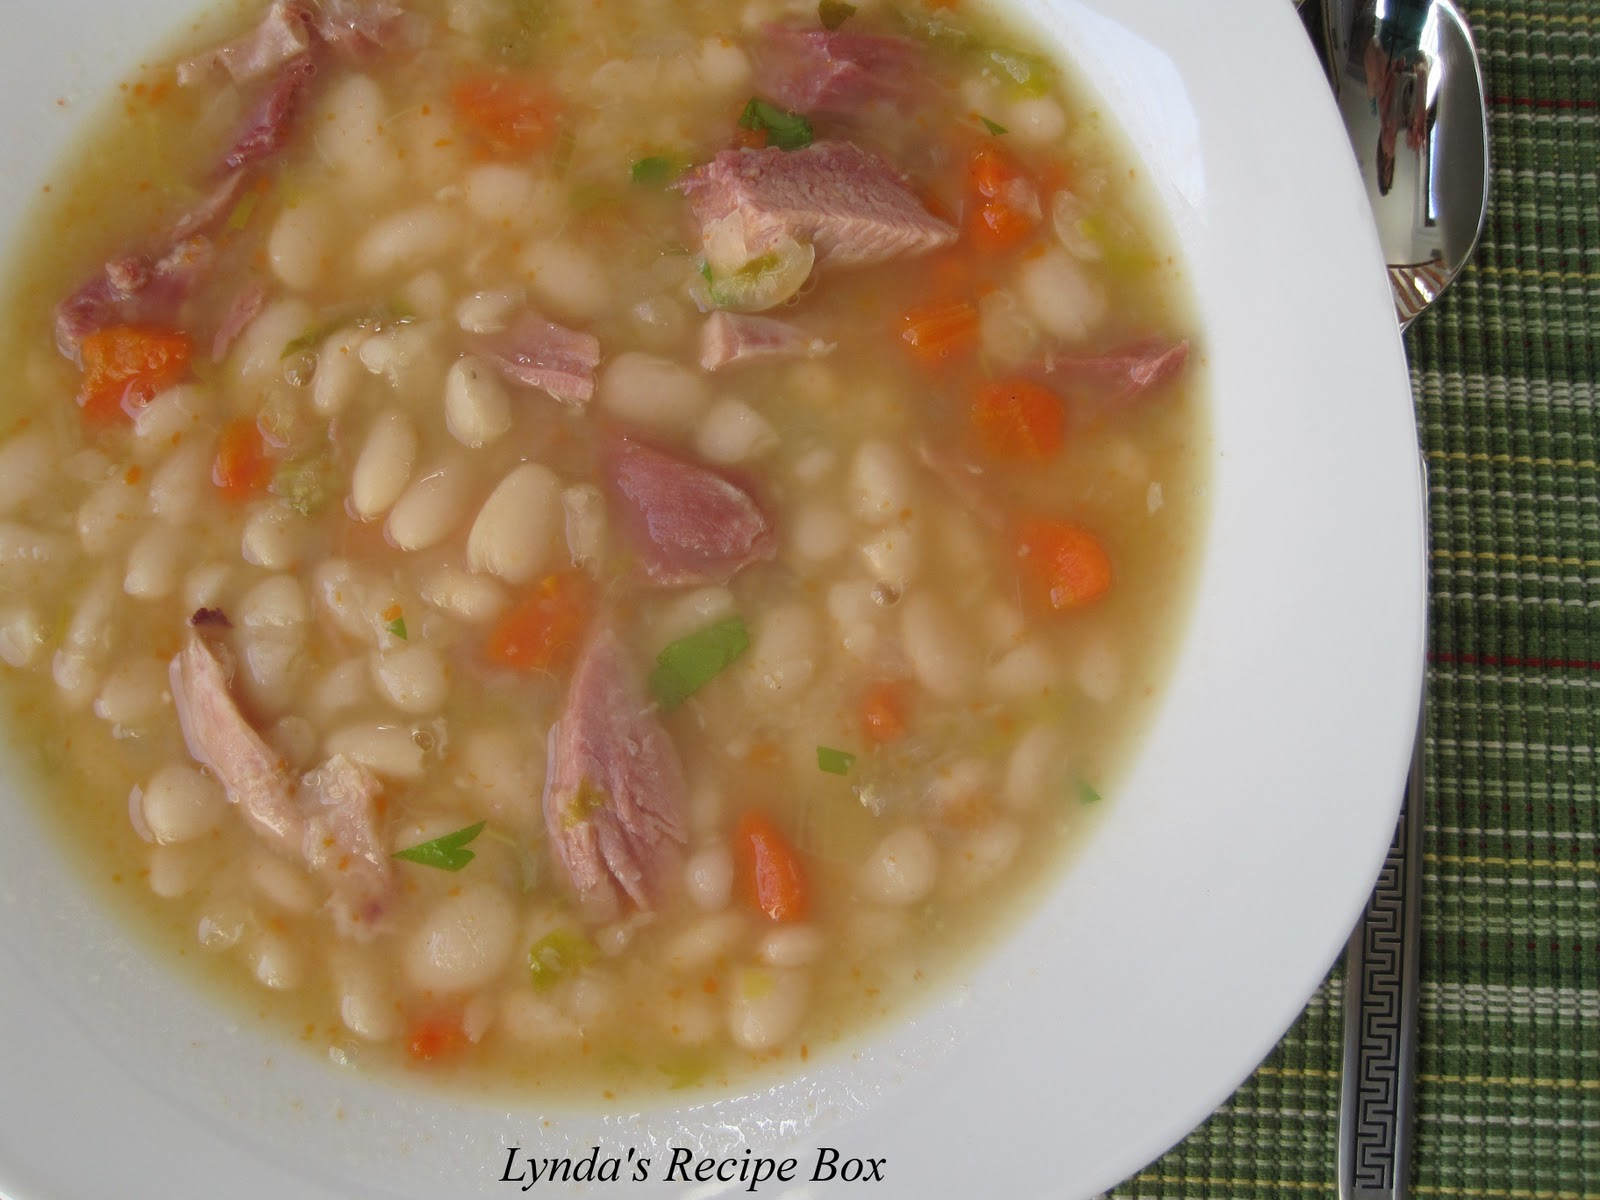 Lynda's Recipe Box: White Bean and Ham Soup